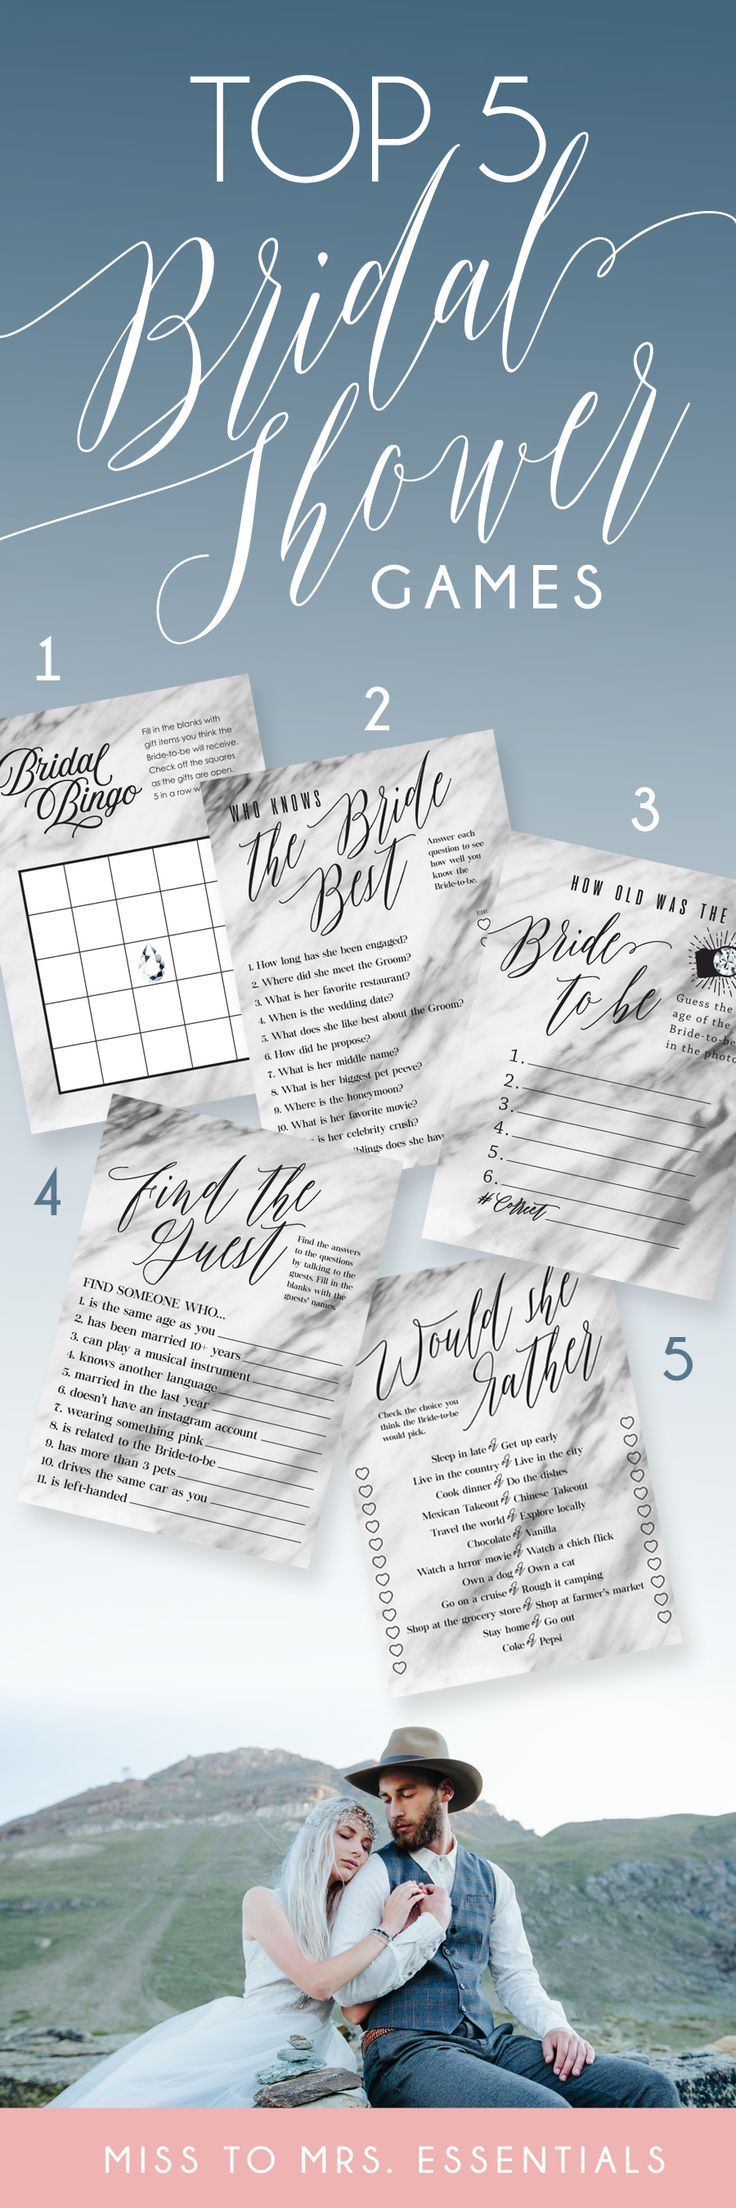 Find the best Bridal Shower Games online at Miss to Mrs. Essentials. bridal shower games that don't suck, bachelorette parties, bachelorette parties games, bridal shower ideas, Fun, Rustic, funny, modern bridal games, bridal shower themes, bridal shower bingo, bridal shower he said she said, bridal shower how old is the bride game, bridal shower would she rather game, bachelorette party games, bachelorette party ideas, game printables, #printable #bachelorettepartyideas #bridalshowergames